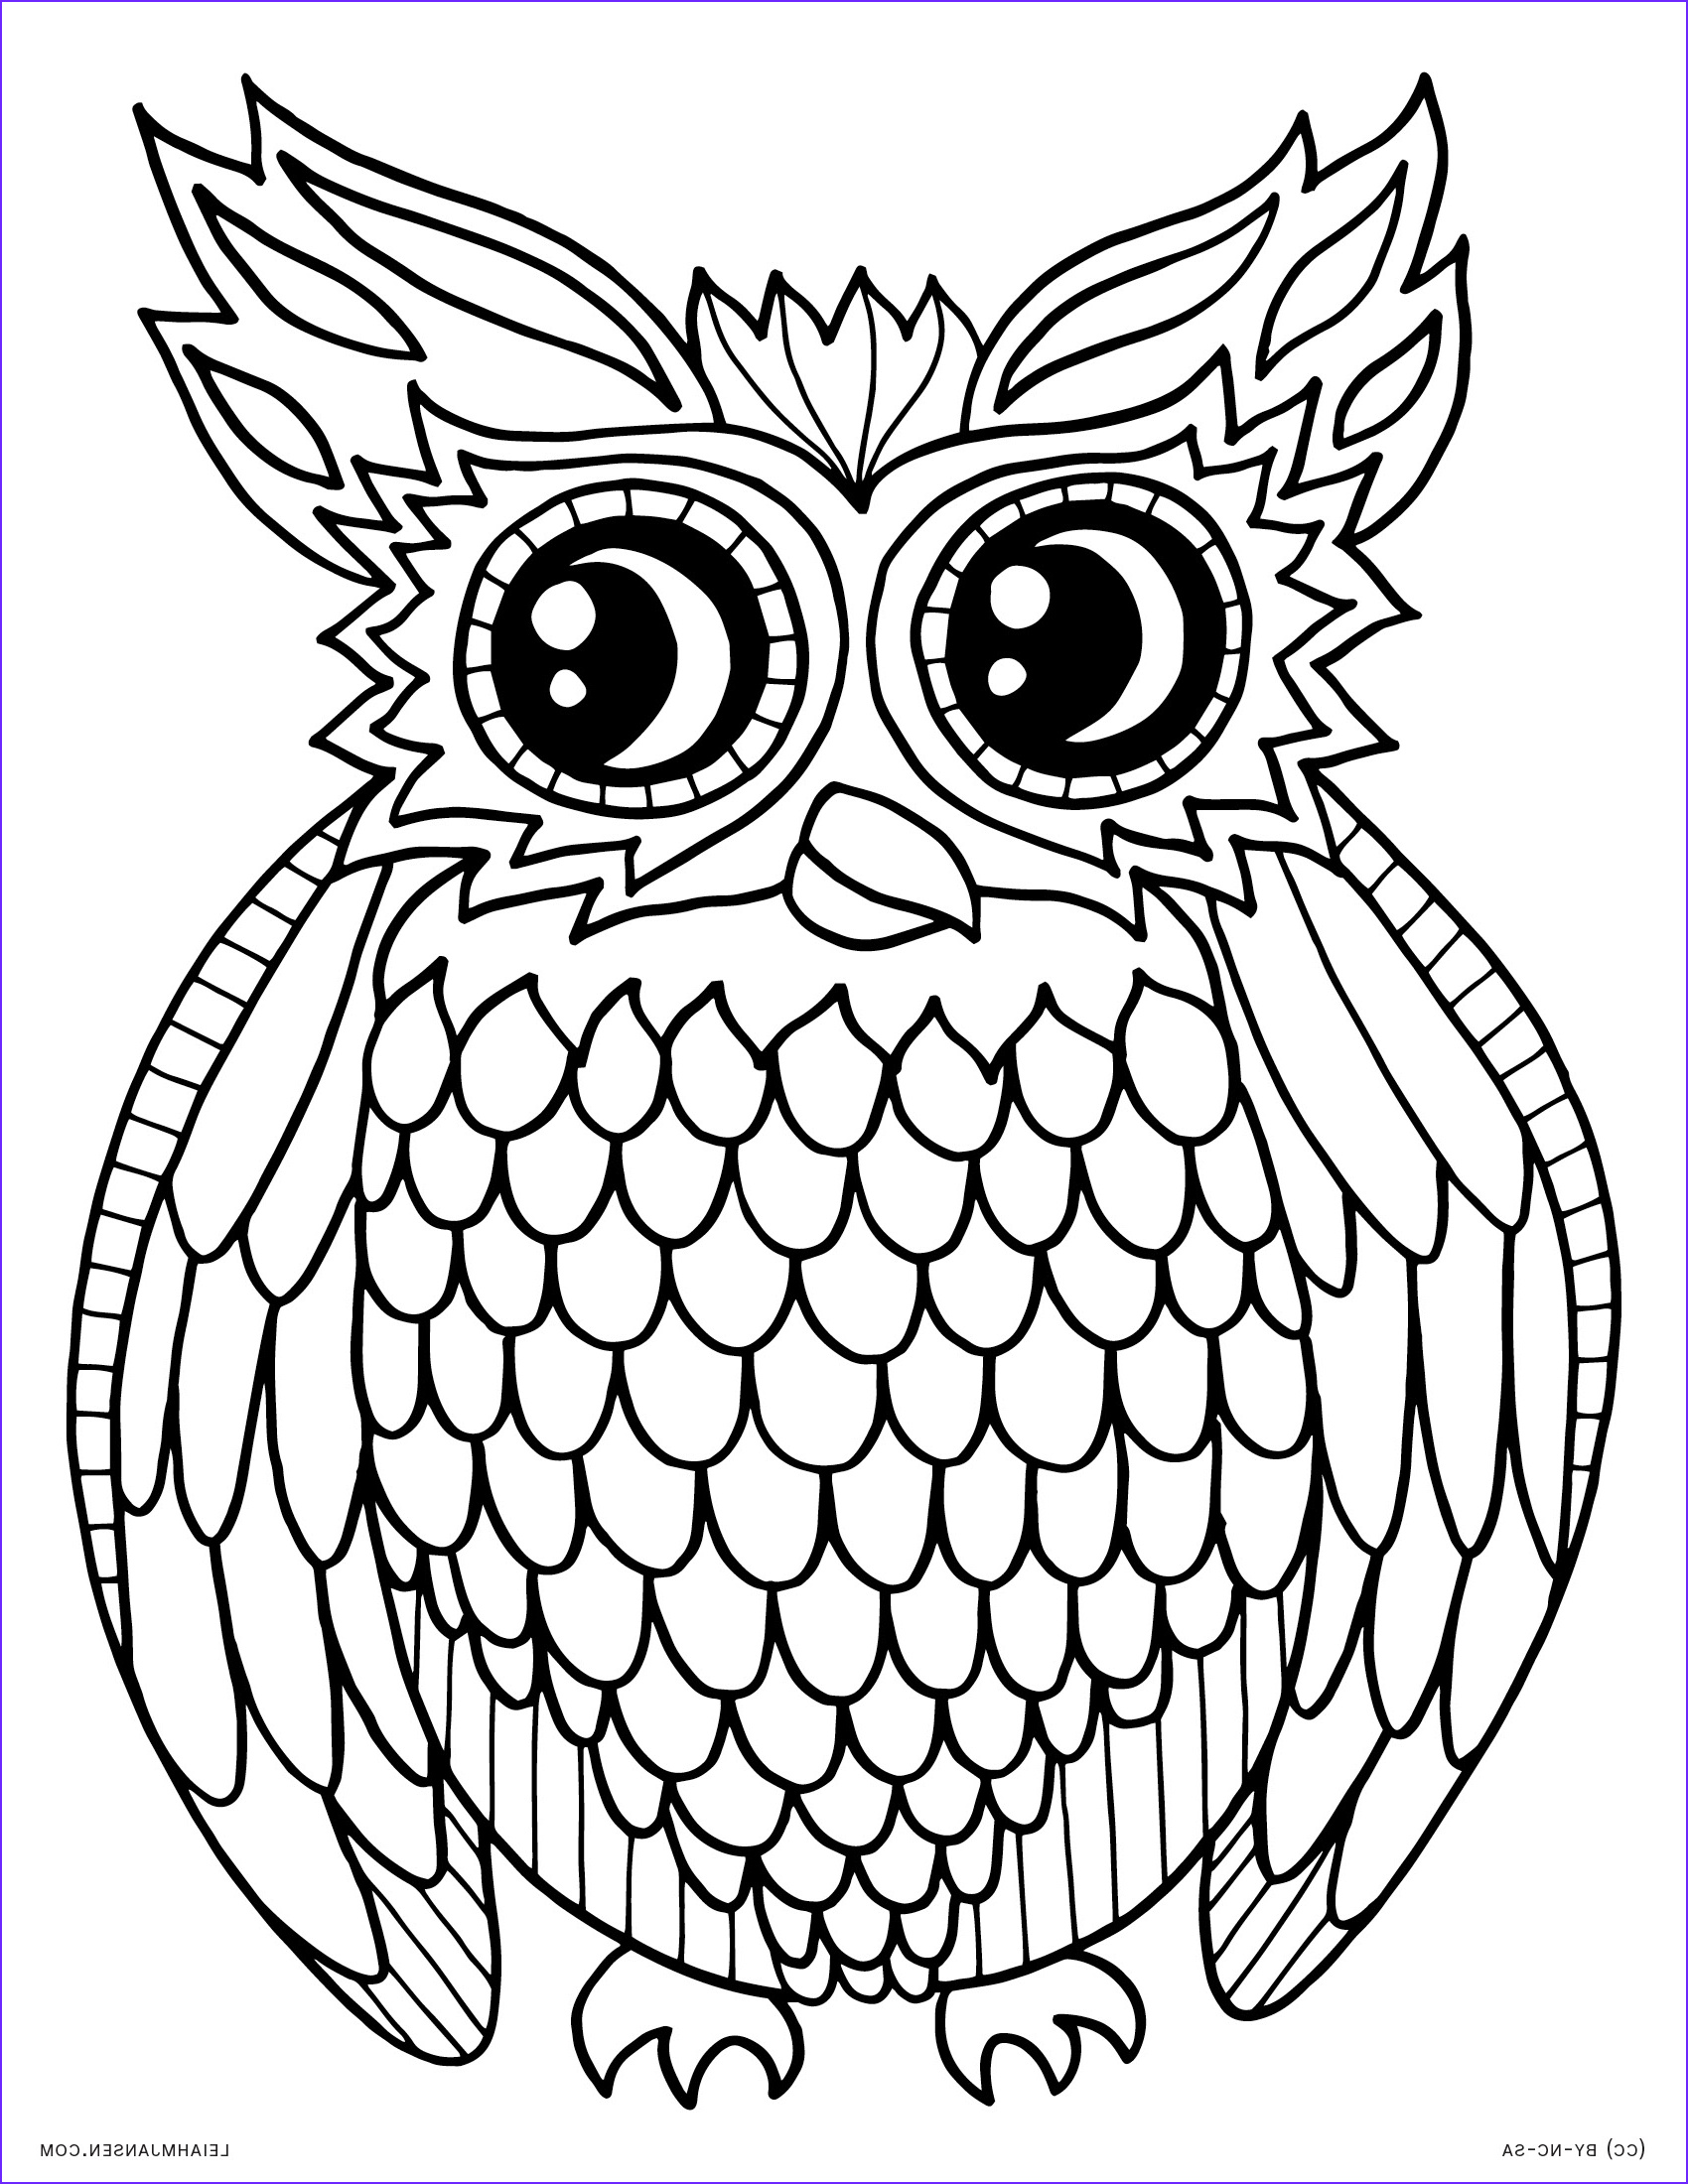 Coloring Images for Adults Inspirational Images Coloring Pages